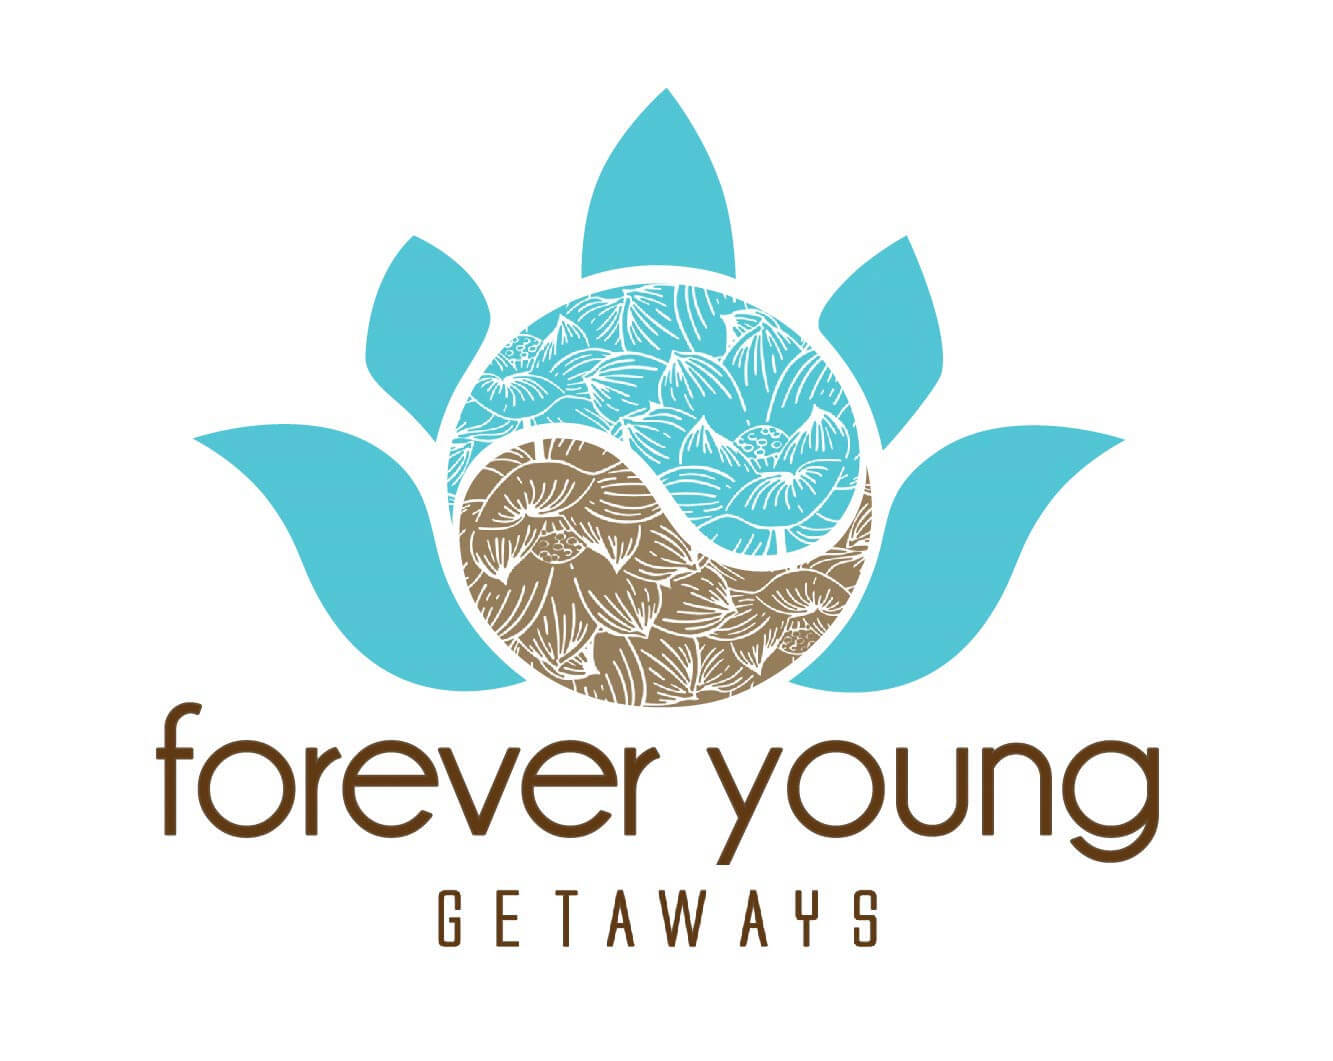 Perth Logo Design by Star 3 Media: Forever Young Getaway